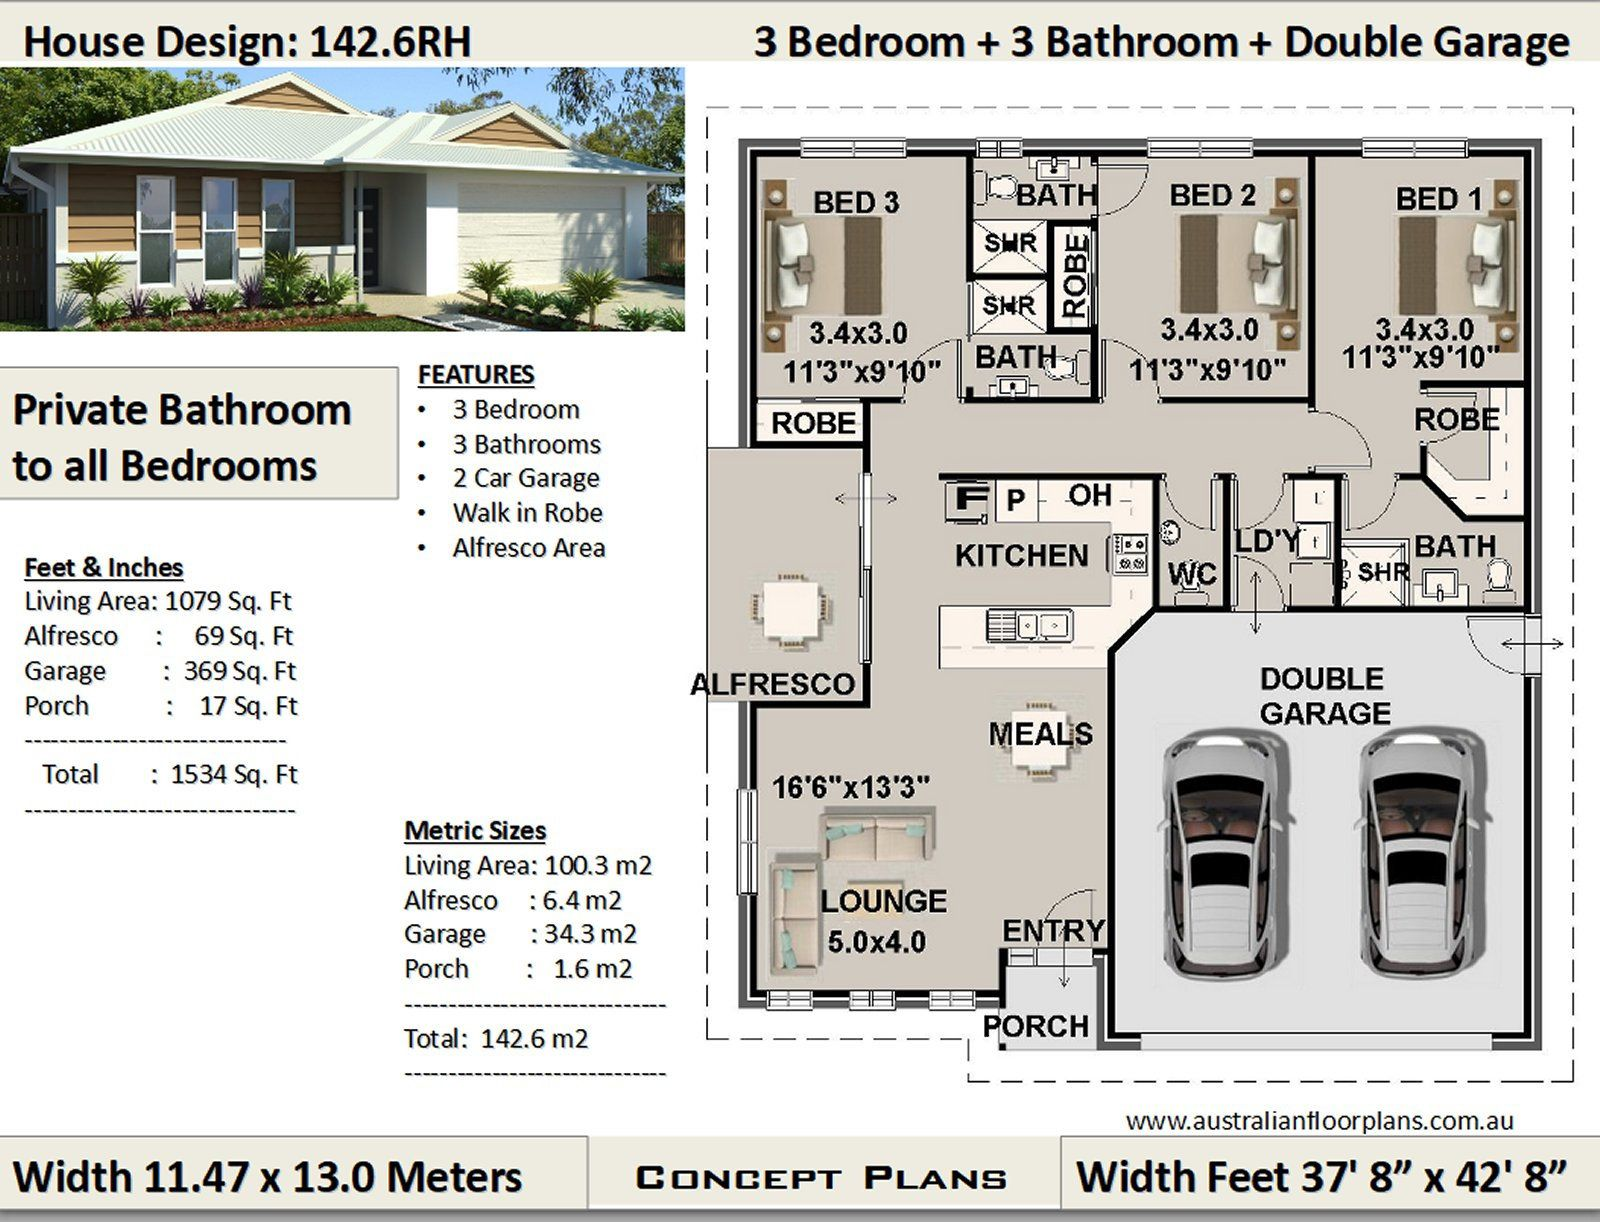 3 Bedroom House Plan 1079 Sq Feet Or 100 M2 Private Etsy Bedroom House Plans House Plans Cottage House Plans